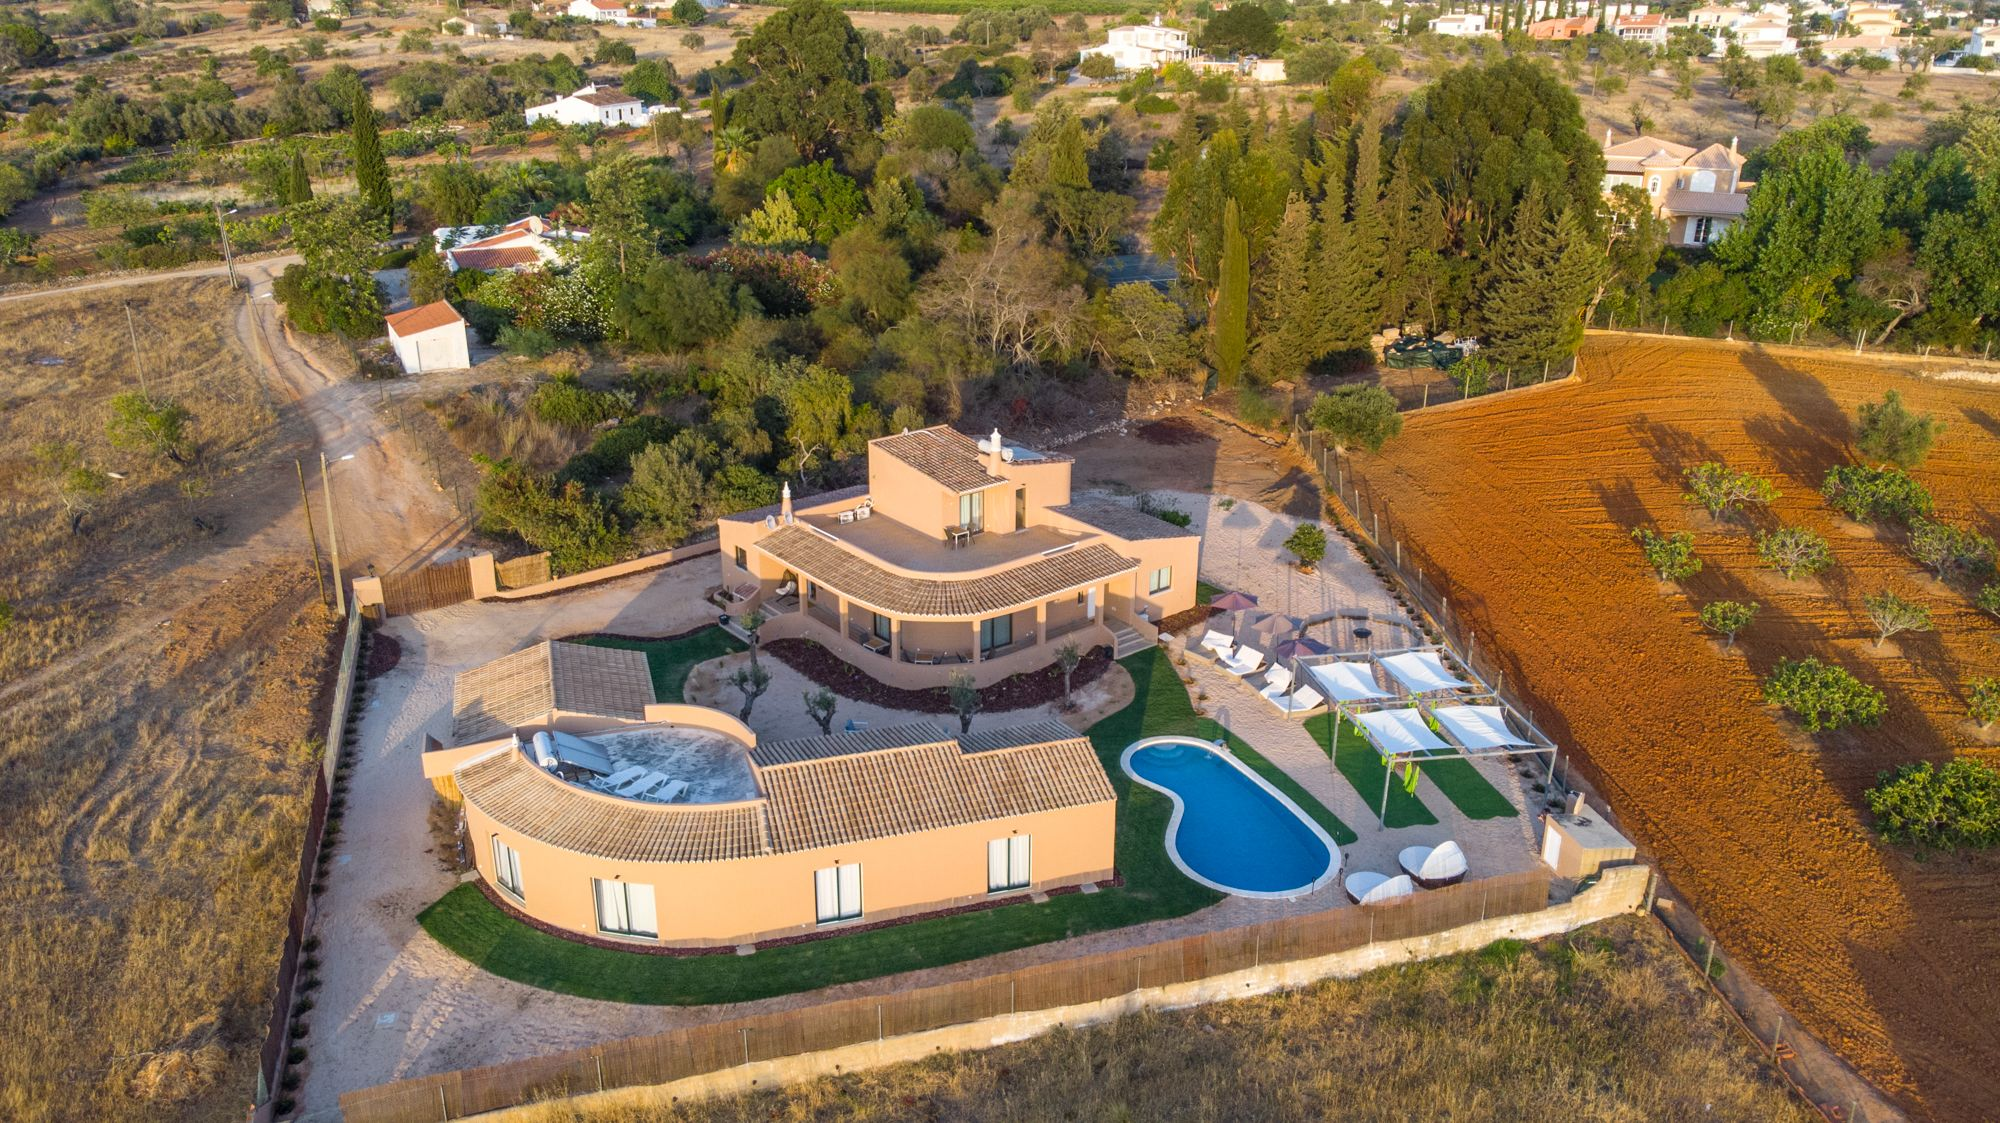 Alamos Retreat is an homage to wellness in the Algarve